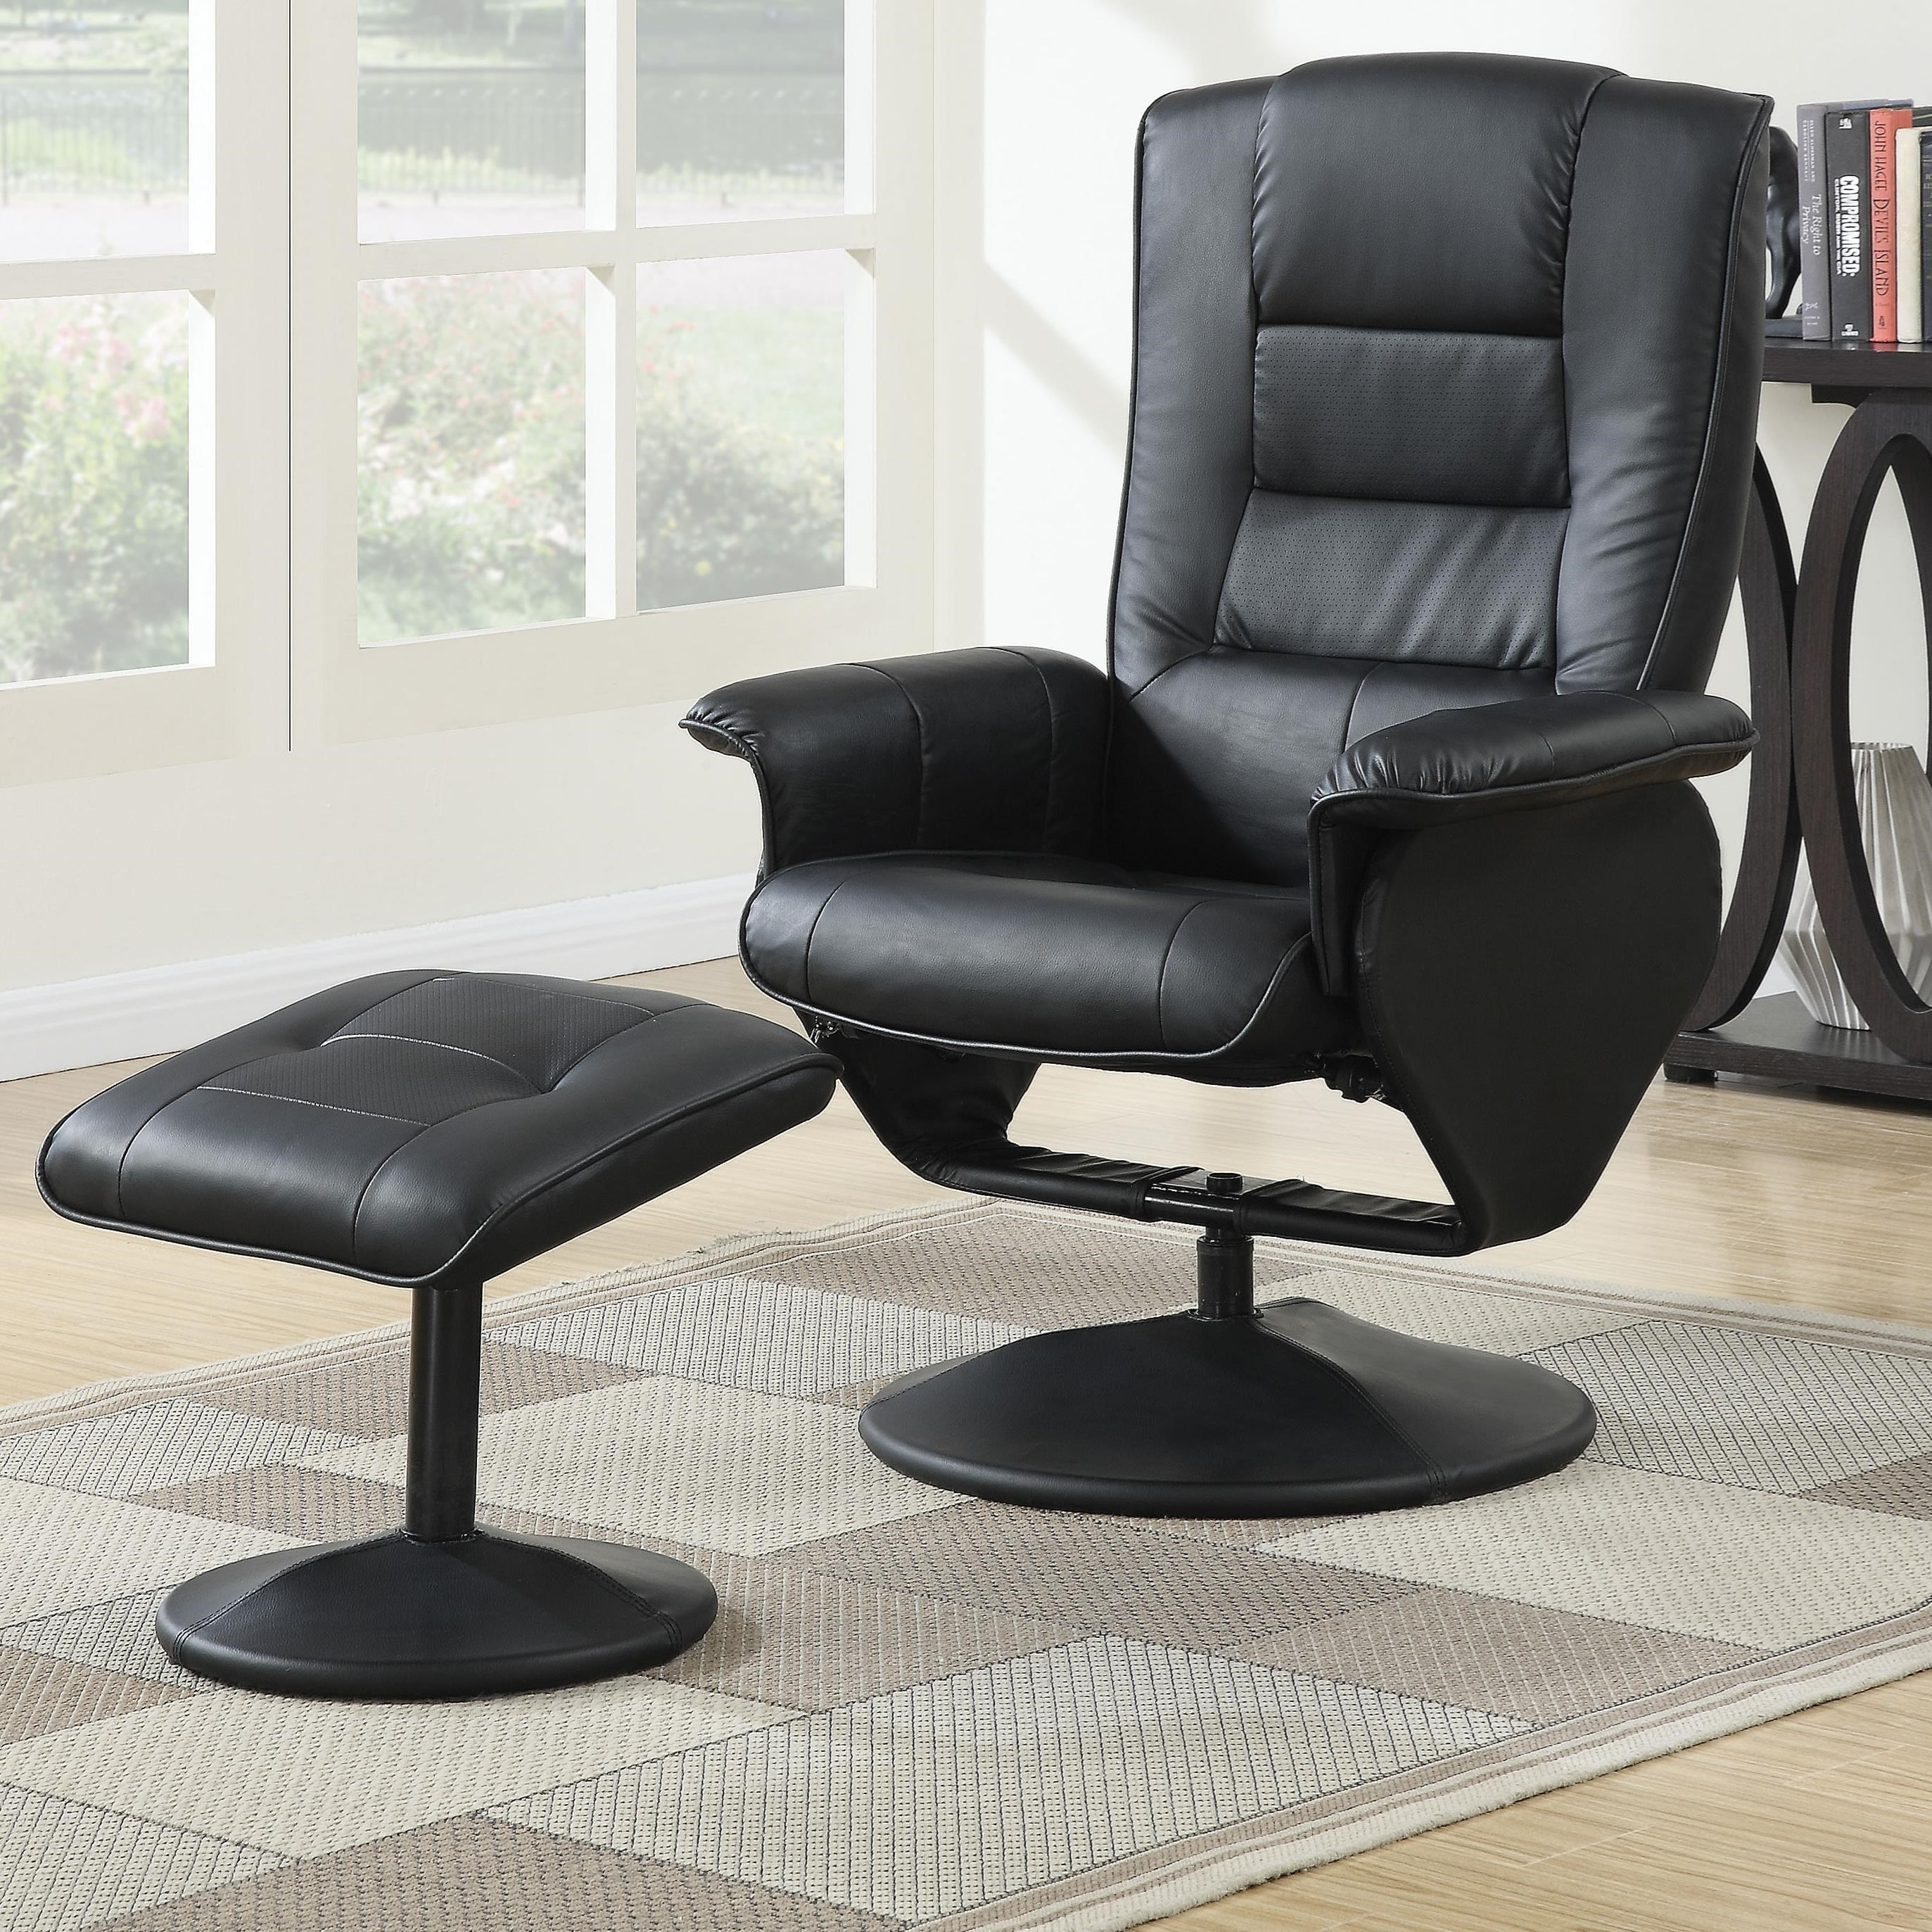 Arche Chair & Ottoman Set by Acme Furniture at Carolina Direct